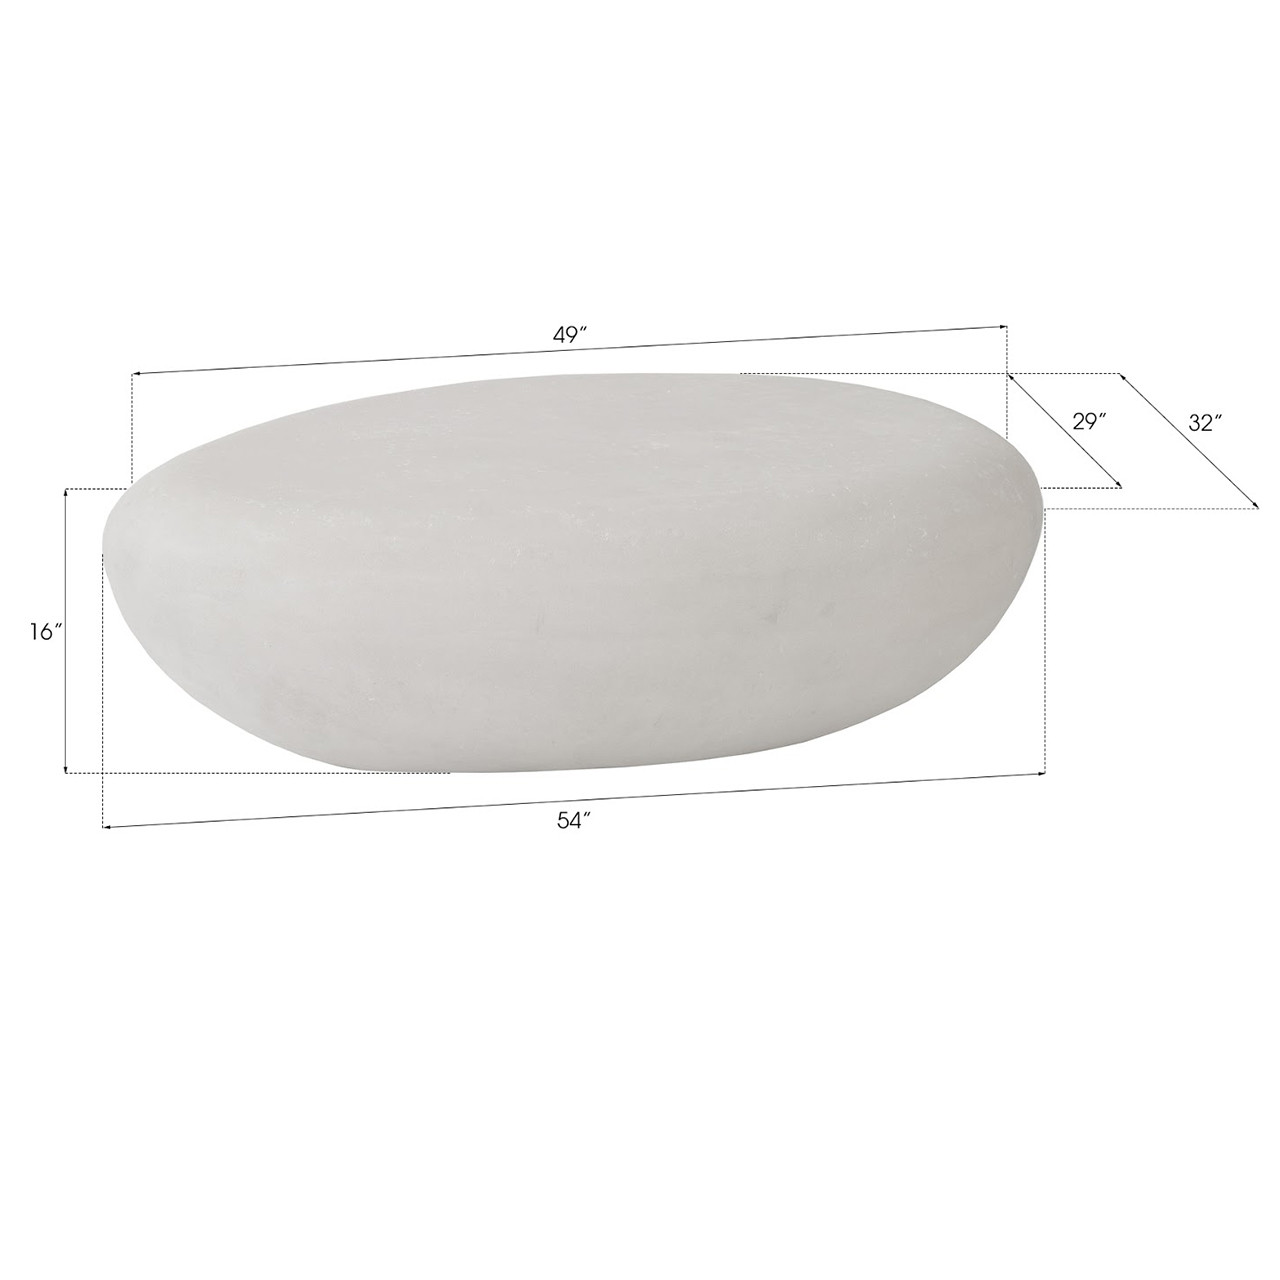 River Stone Oval Outdoor Coffee Table - Large